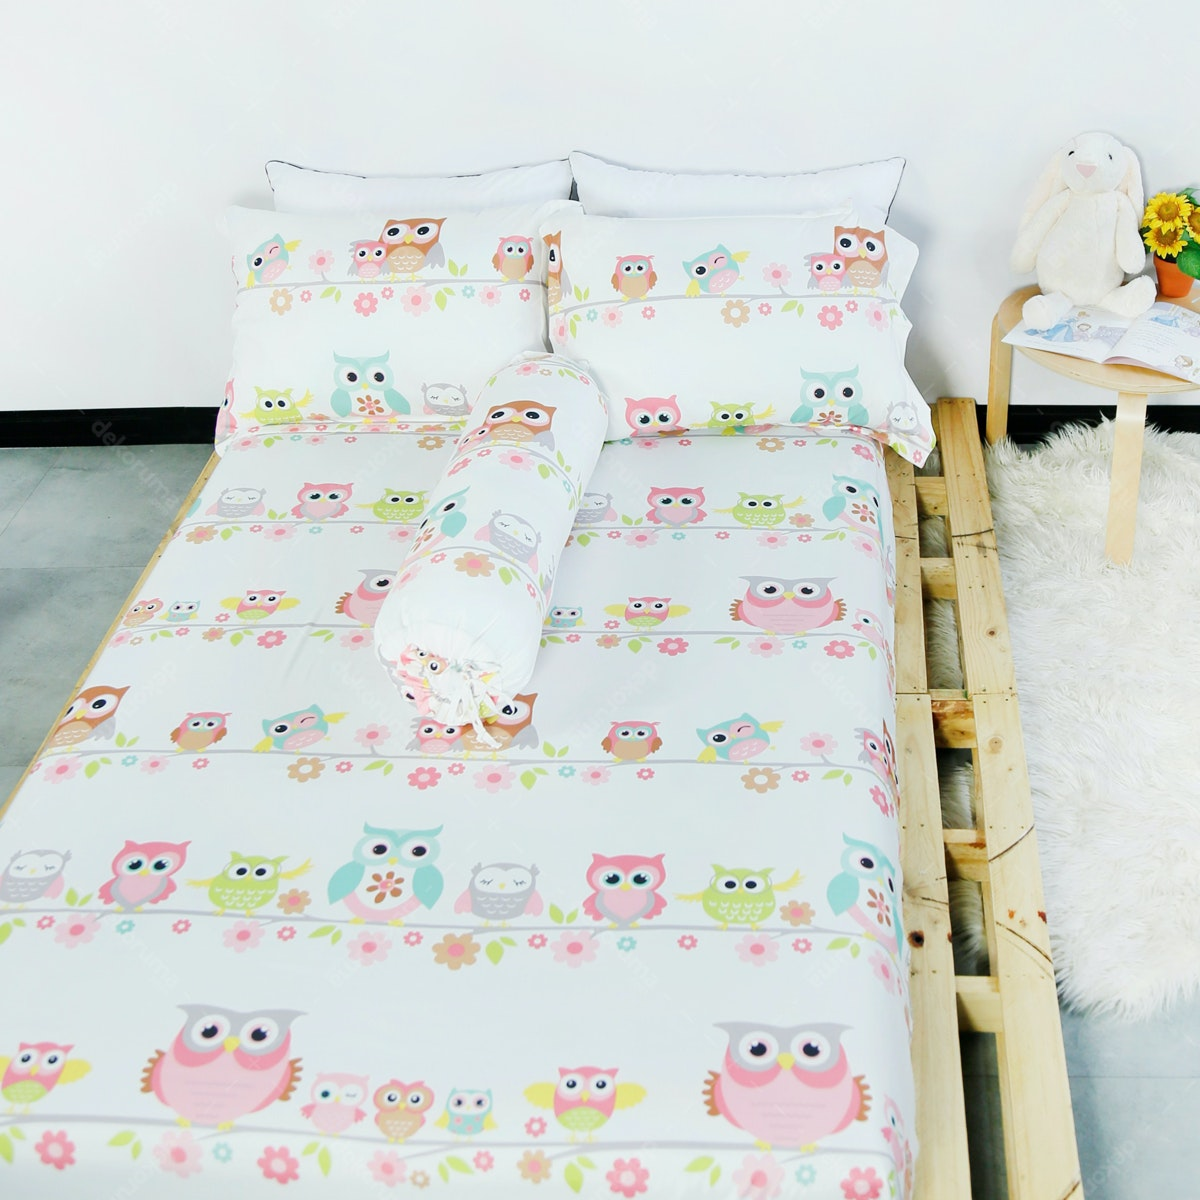 Pillow People Bed Sheet Set Baby Owl 180x200x35 Print